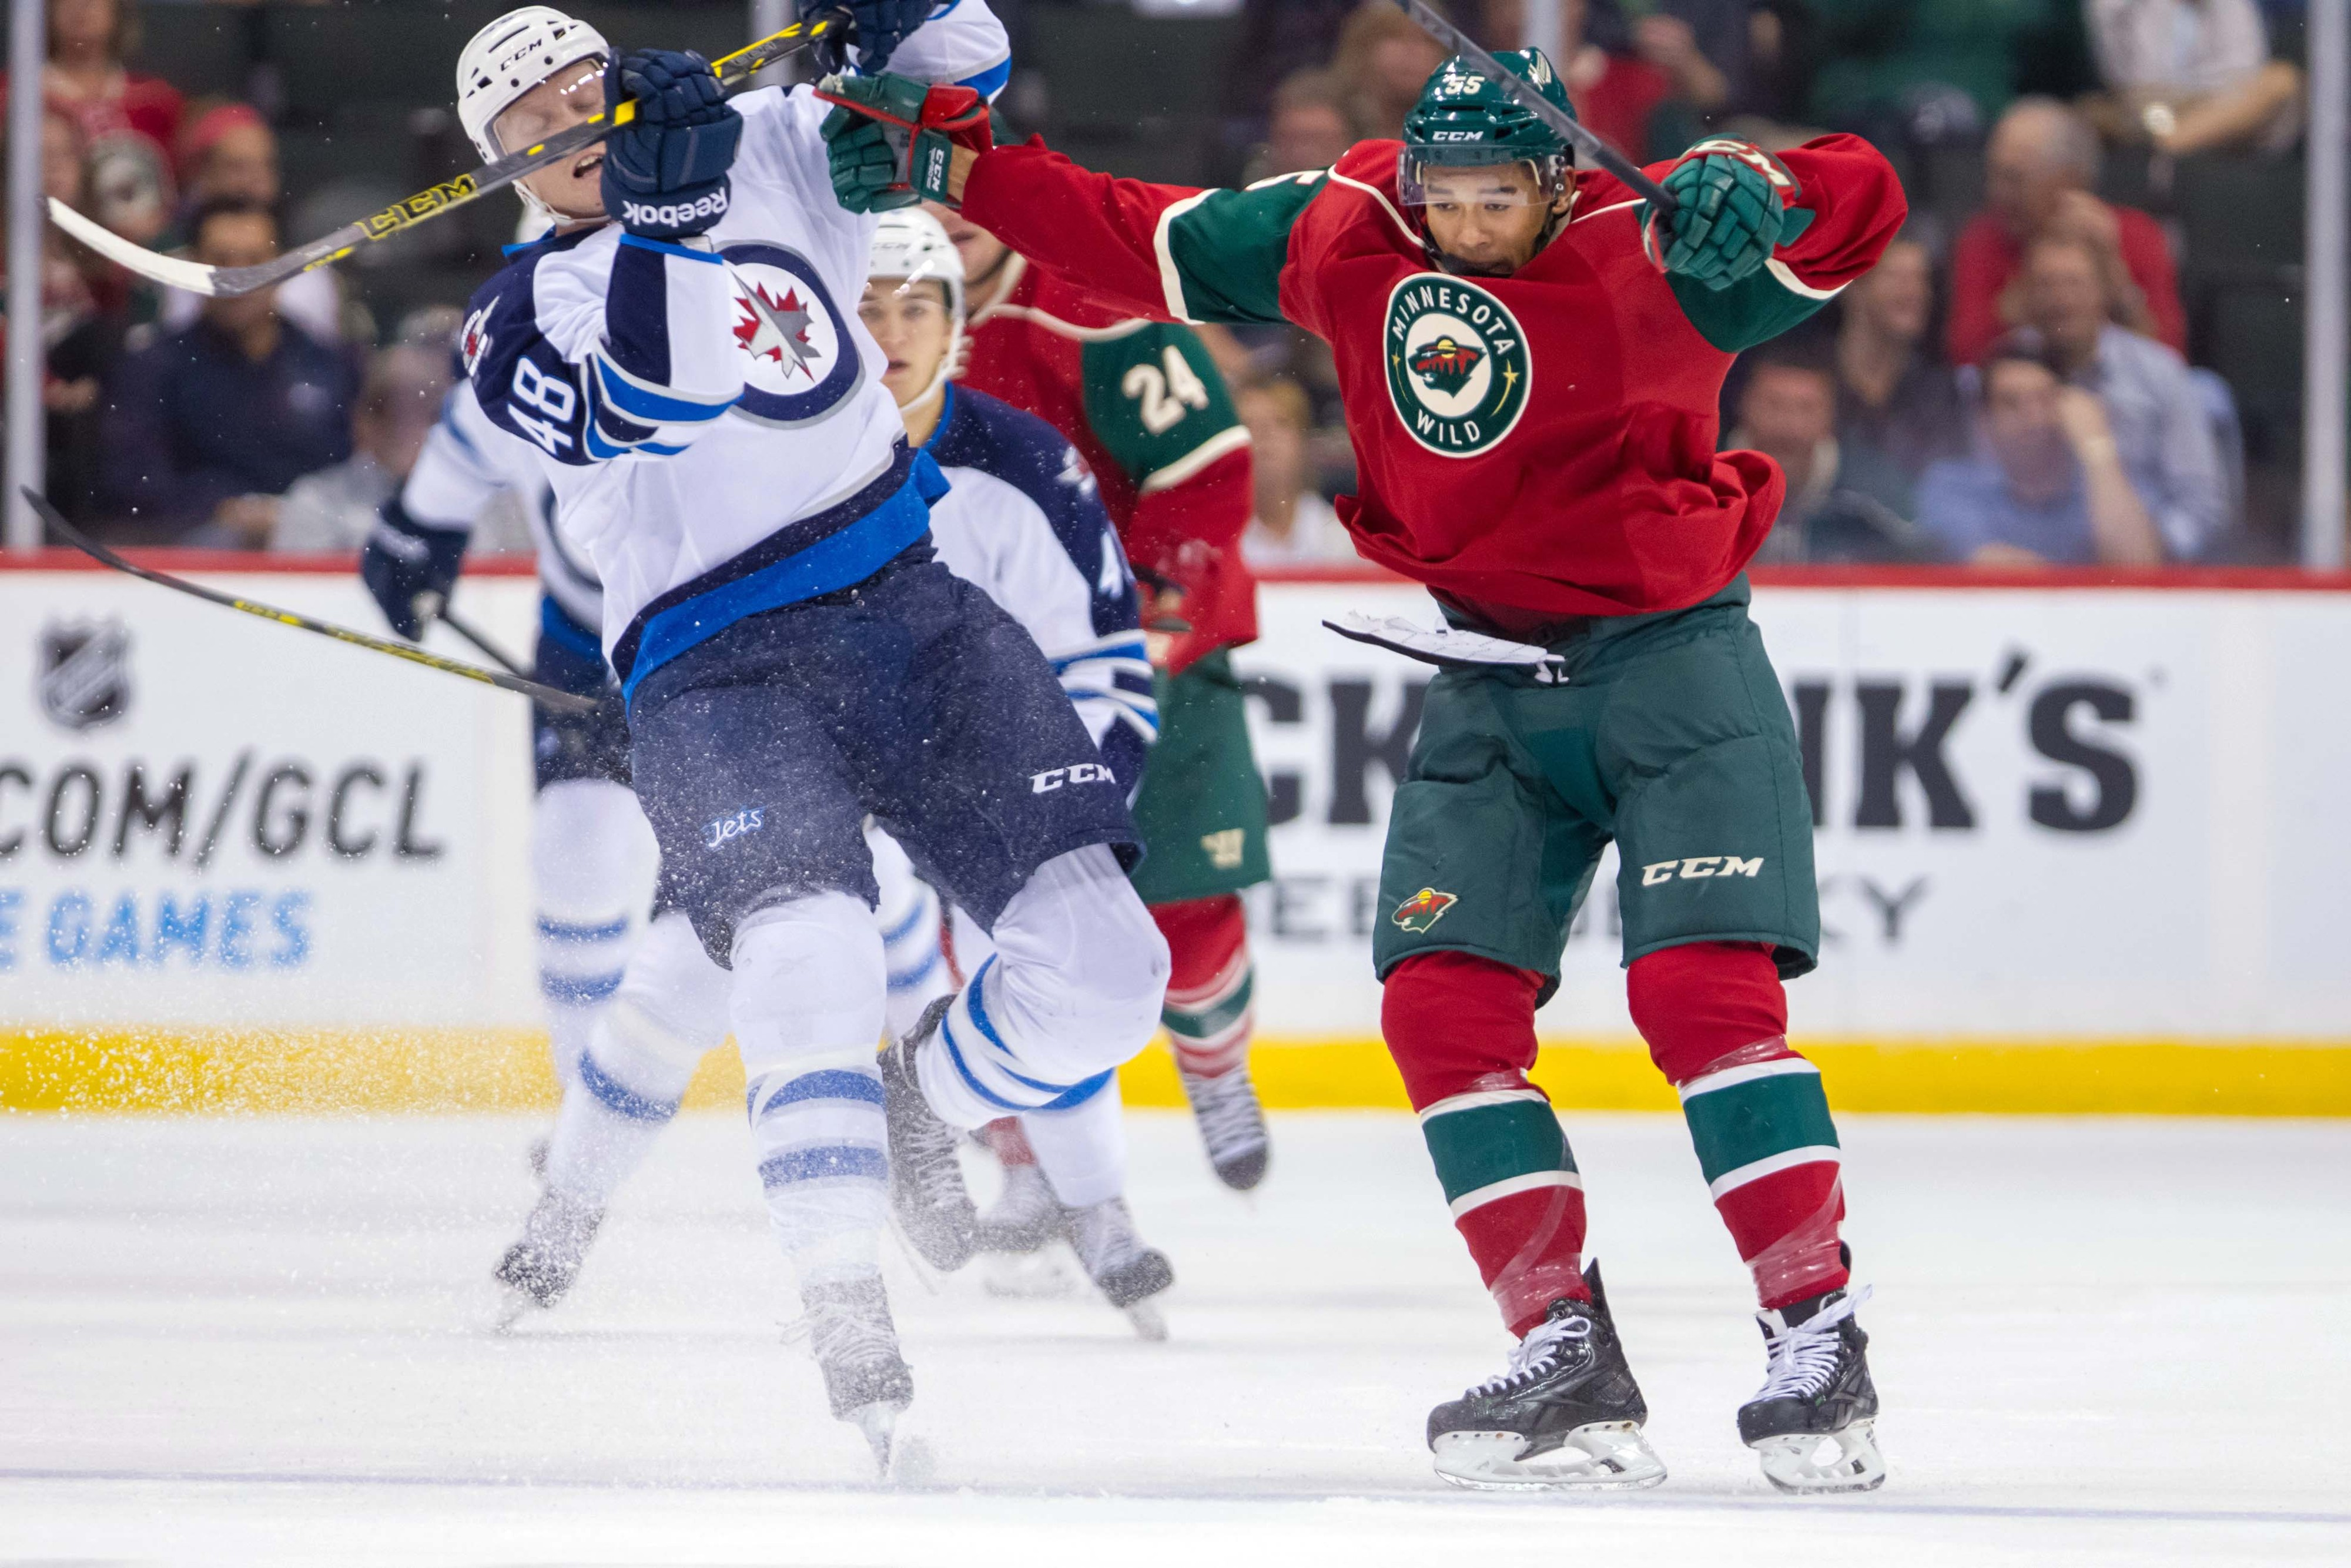 Mat Dumba brings physicality, showman ship, and a ton of skills to the Wild, if they're smart enough to play him.